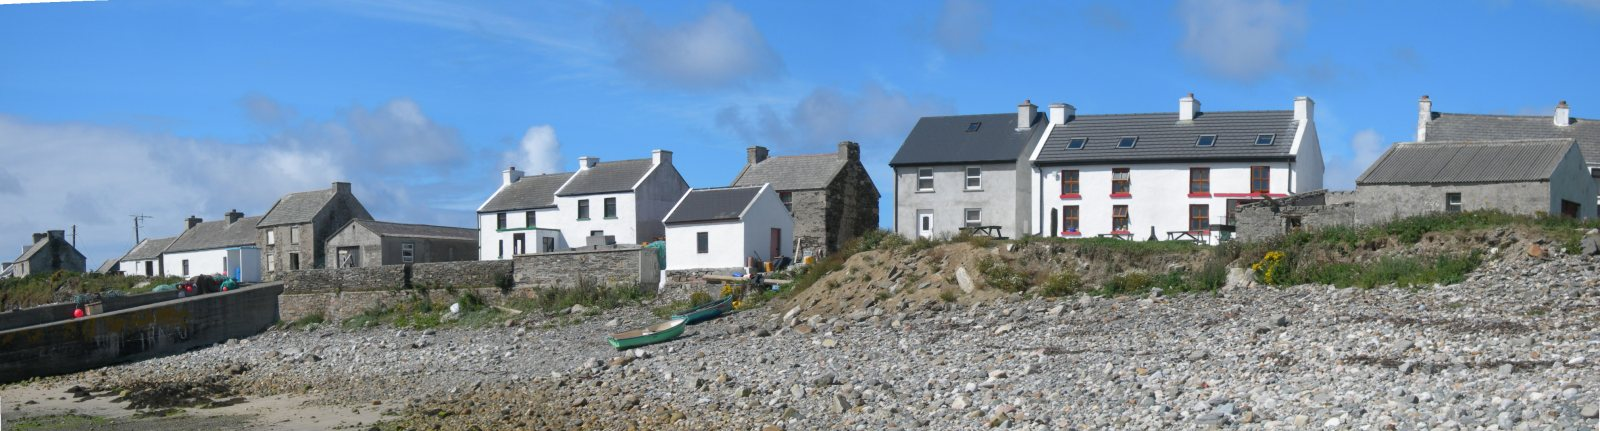 part of the main cluster of houses on Inishbofin which run along the shore by the pier